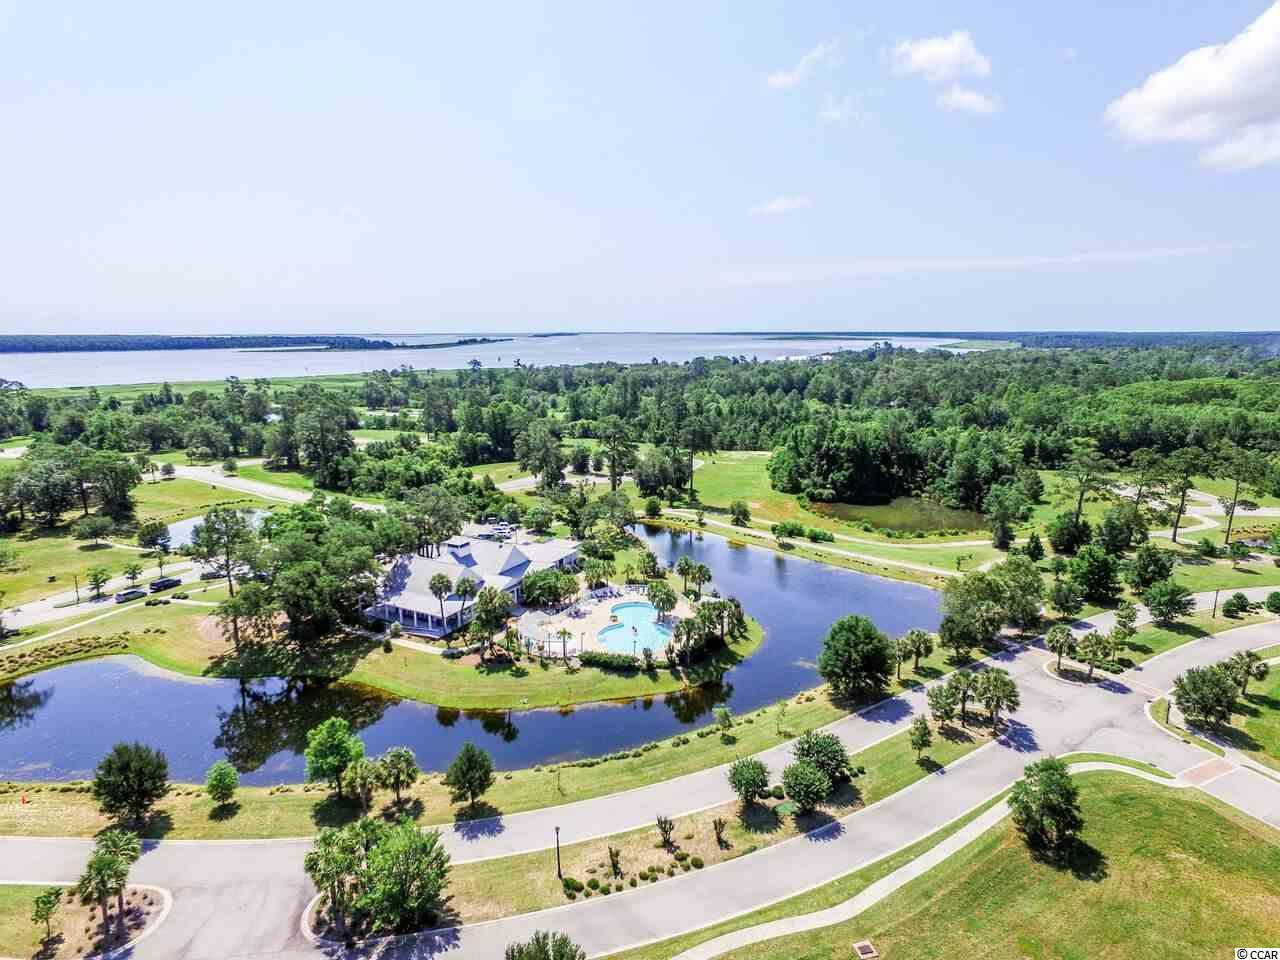 Located in South Island Plantation, a gated community located along Winyah Bay and the Intracoastal Waterway, near Historic Georgetown, SC. Community amenities include a pool, kiddie pool and hot tub. There is also a 5000 sq ft club house with an equipped fitness center, a bar and a full kitchen. Walking trails wind throughout the community with gazebos for periodic resting. A fishing/crabbin' gazebo is now complete. A secured RV/ Boat storage area is available for property owners. Beautiful ponds for fishing and huge Oak Trees make this one of the premier communities in the Georgetown area. Natural gas is also available in South Island Plantation. Build your dream home today..